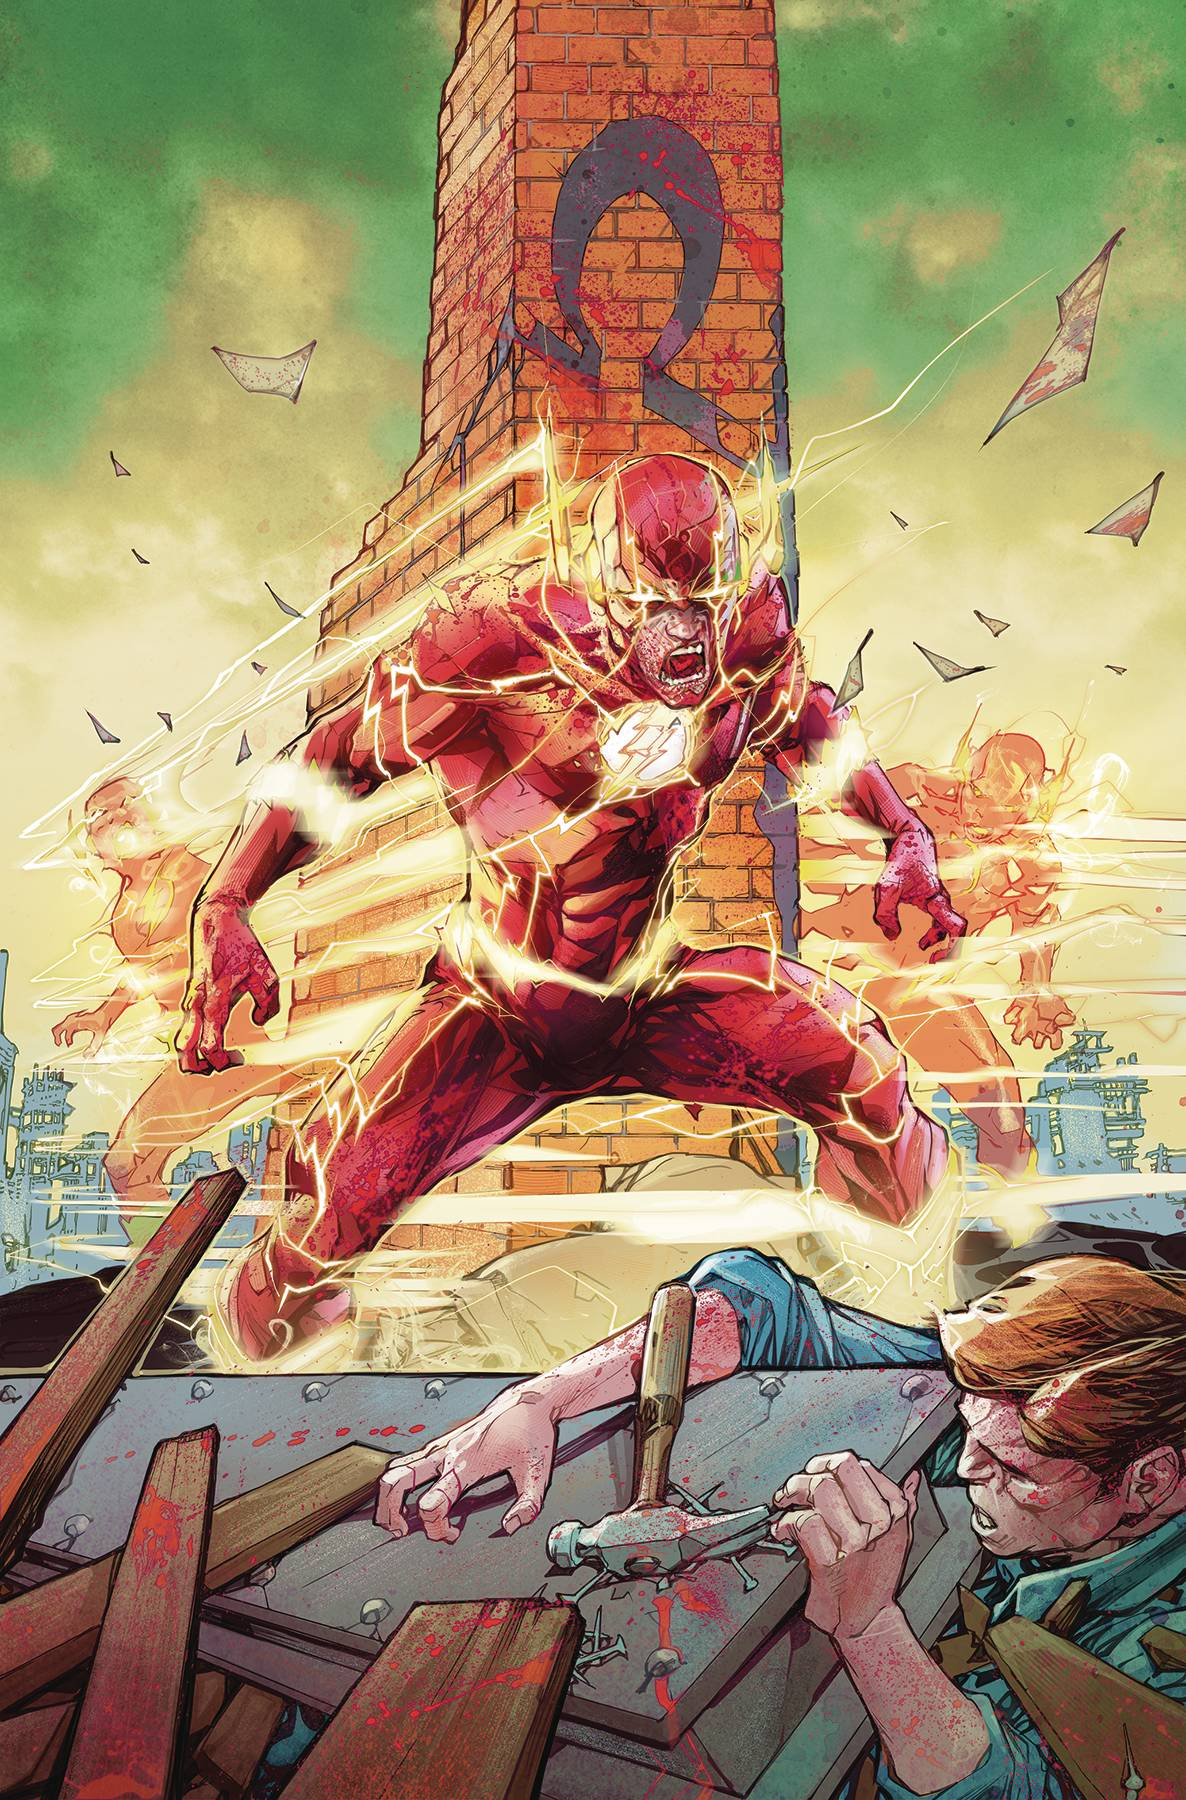 Barry Allen (DCeased)